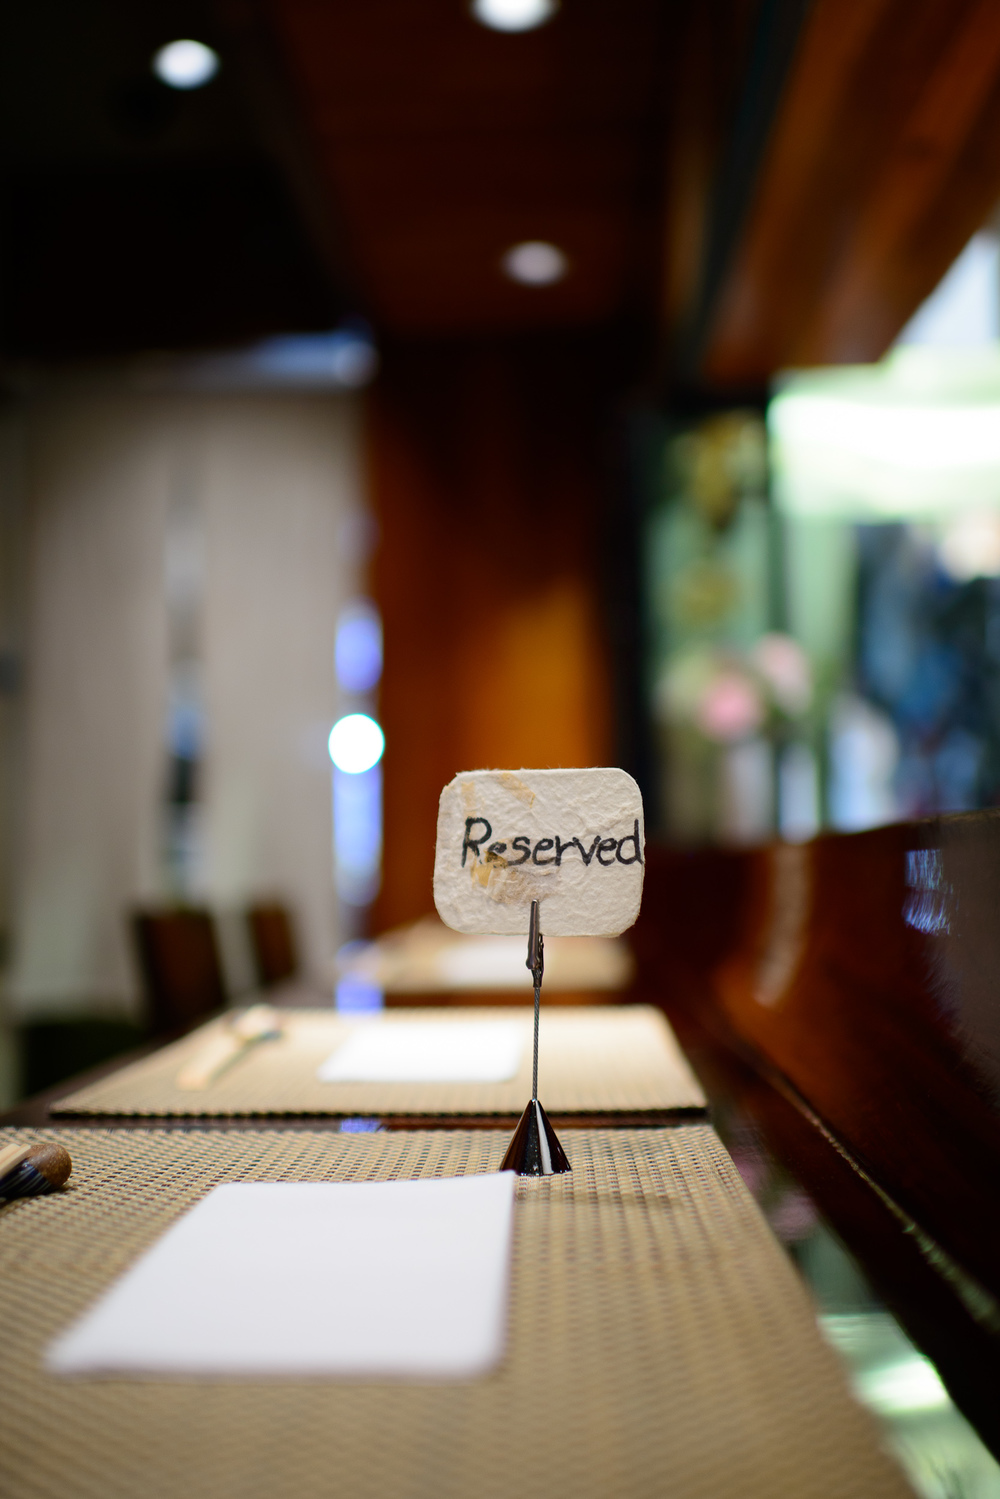 Reserved for kaiseki